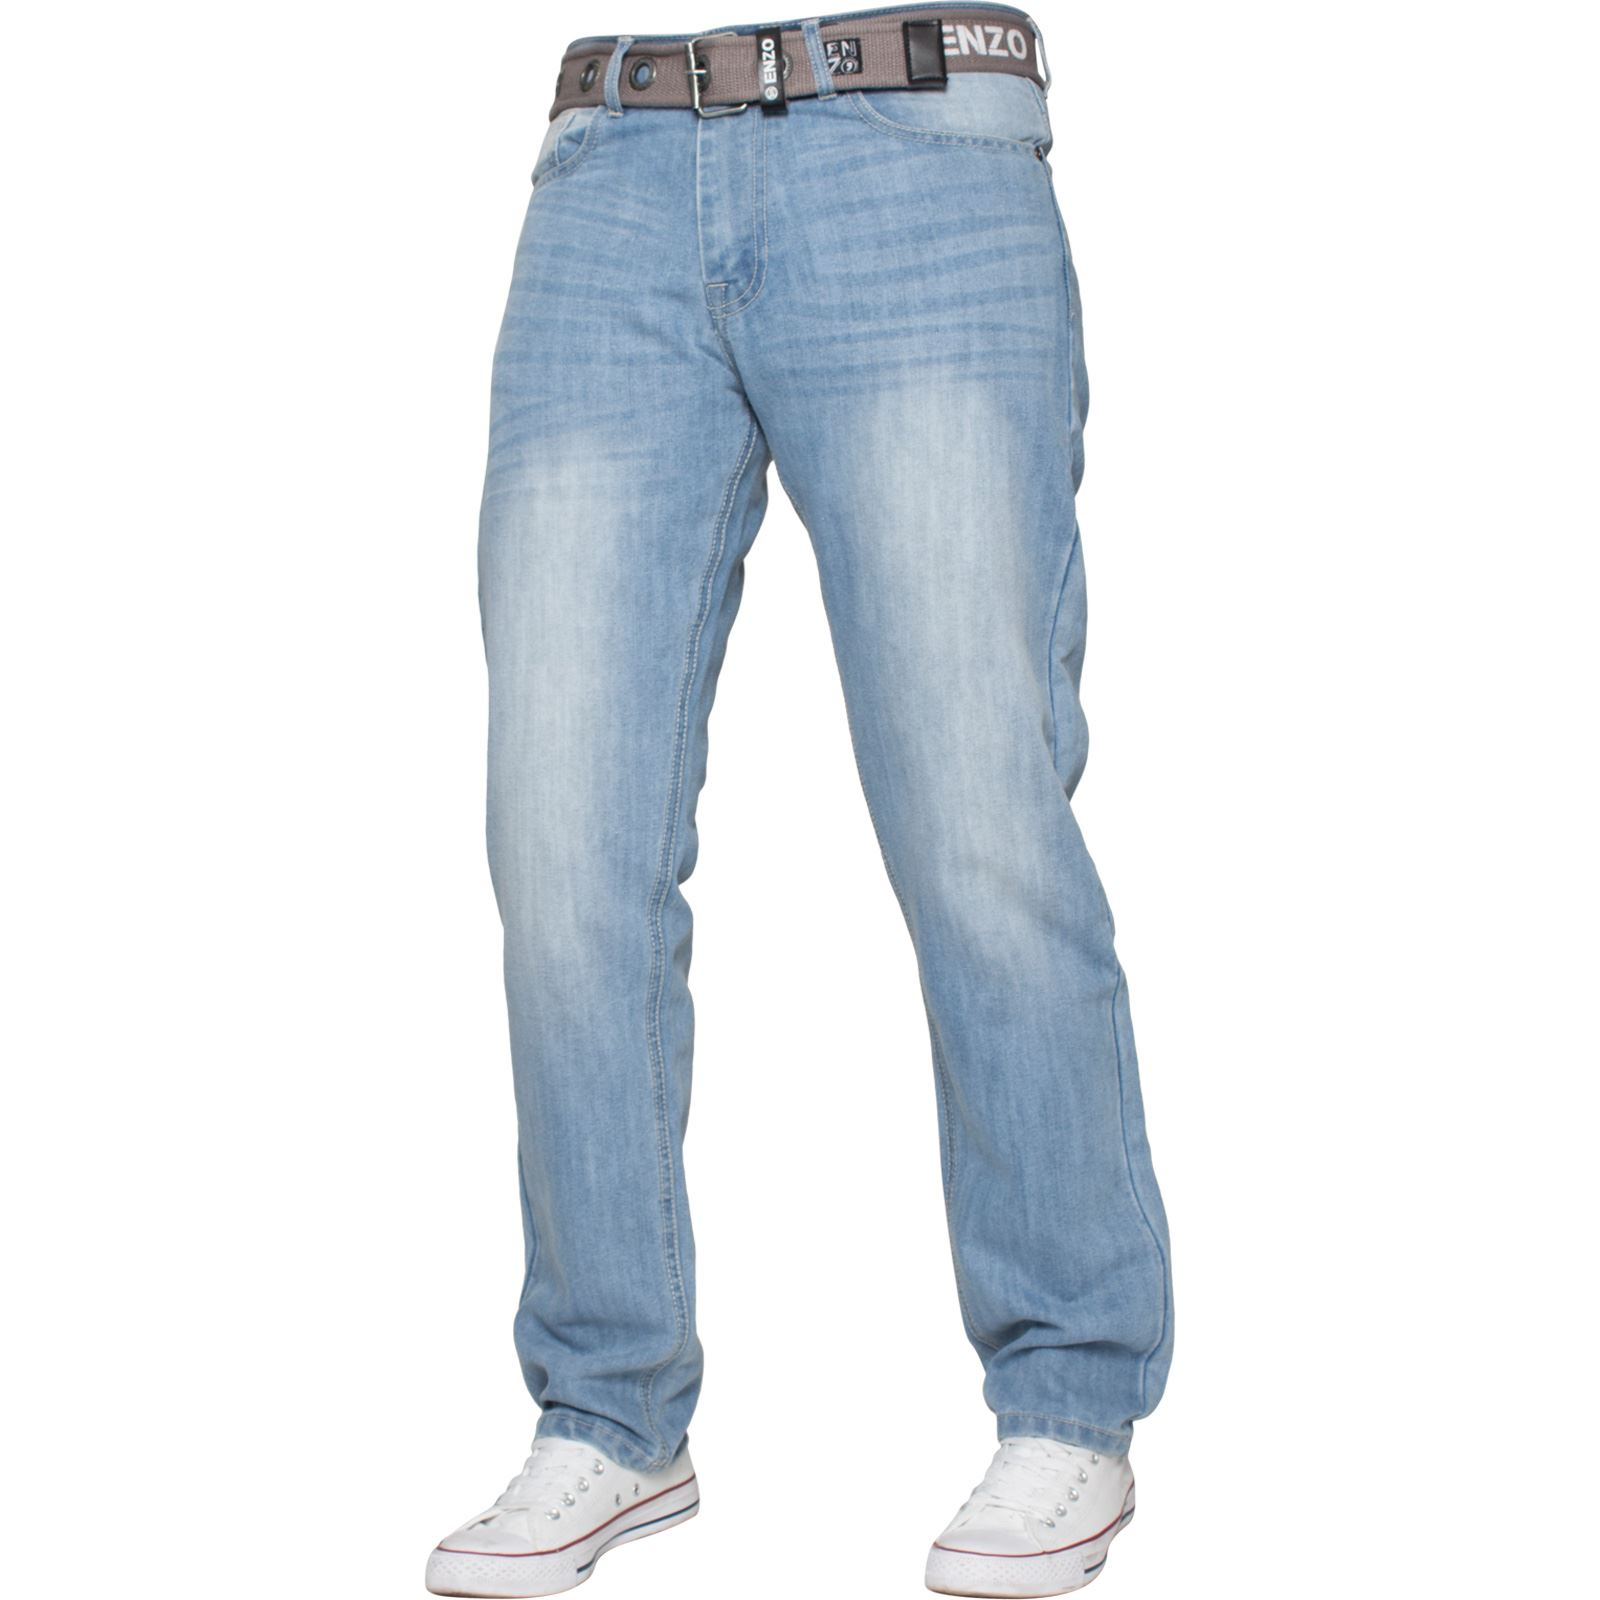 Enzo-Mens-Designer-Jeans-Regular-Fit-Denim-Pants-Big-Tall-All-Waist-Sizes thumbnail 15